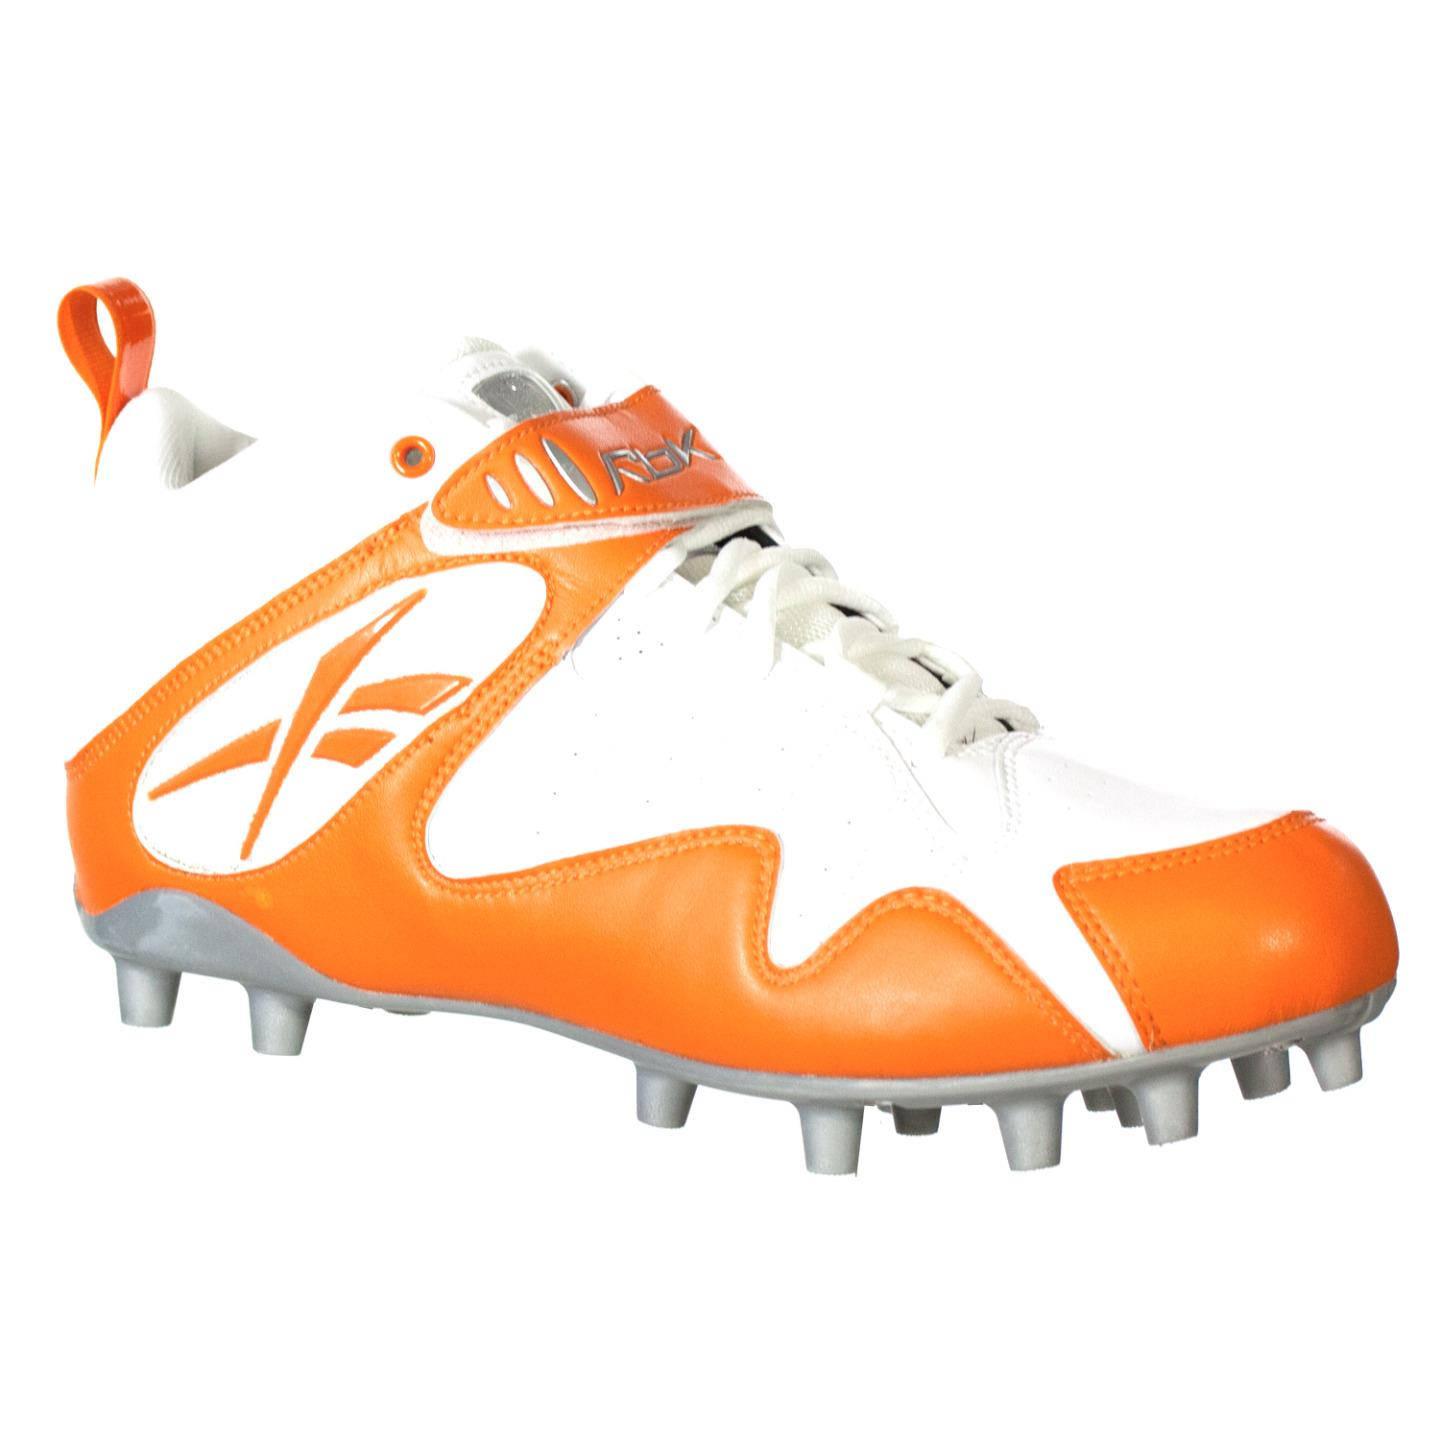 REEBOK PRO ALL OUT ONE MID MP MENS FOOTBALL CLEATS WHITE & ORANGE 12